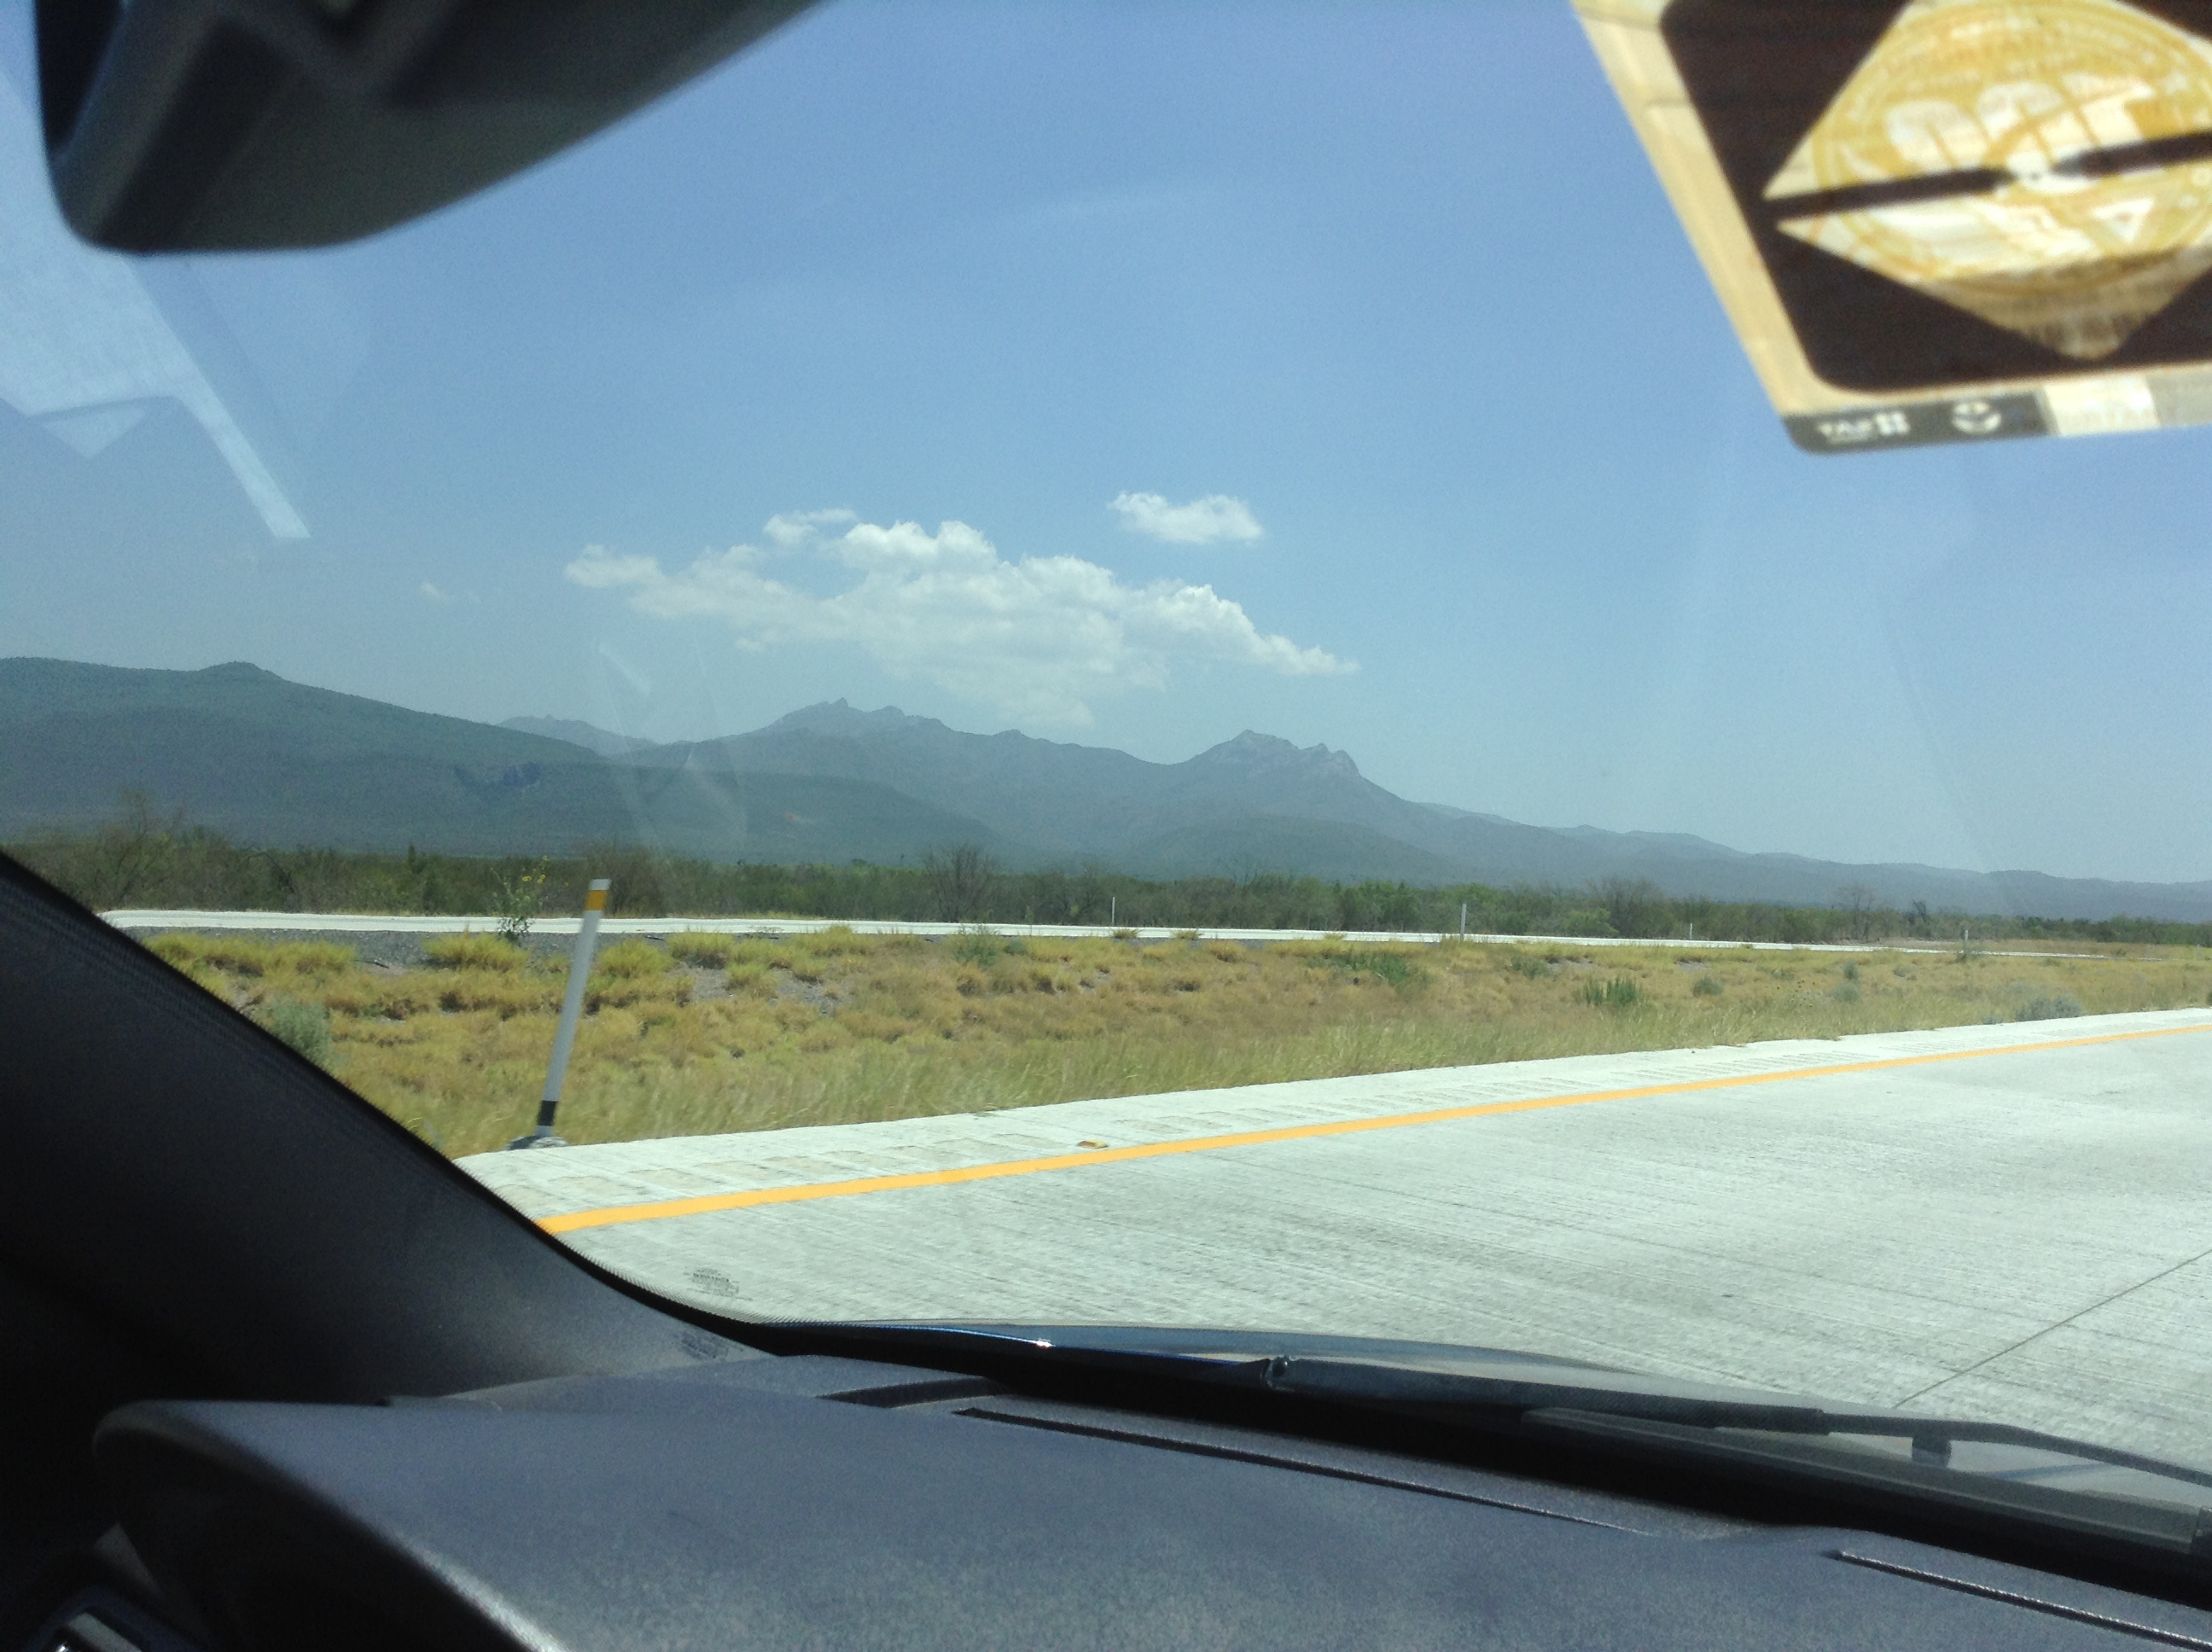 Hills/Mountains of Mexico - Oh! and that would be the important sticker in the front window we had to get at the border.